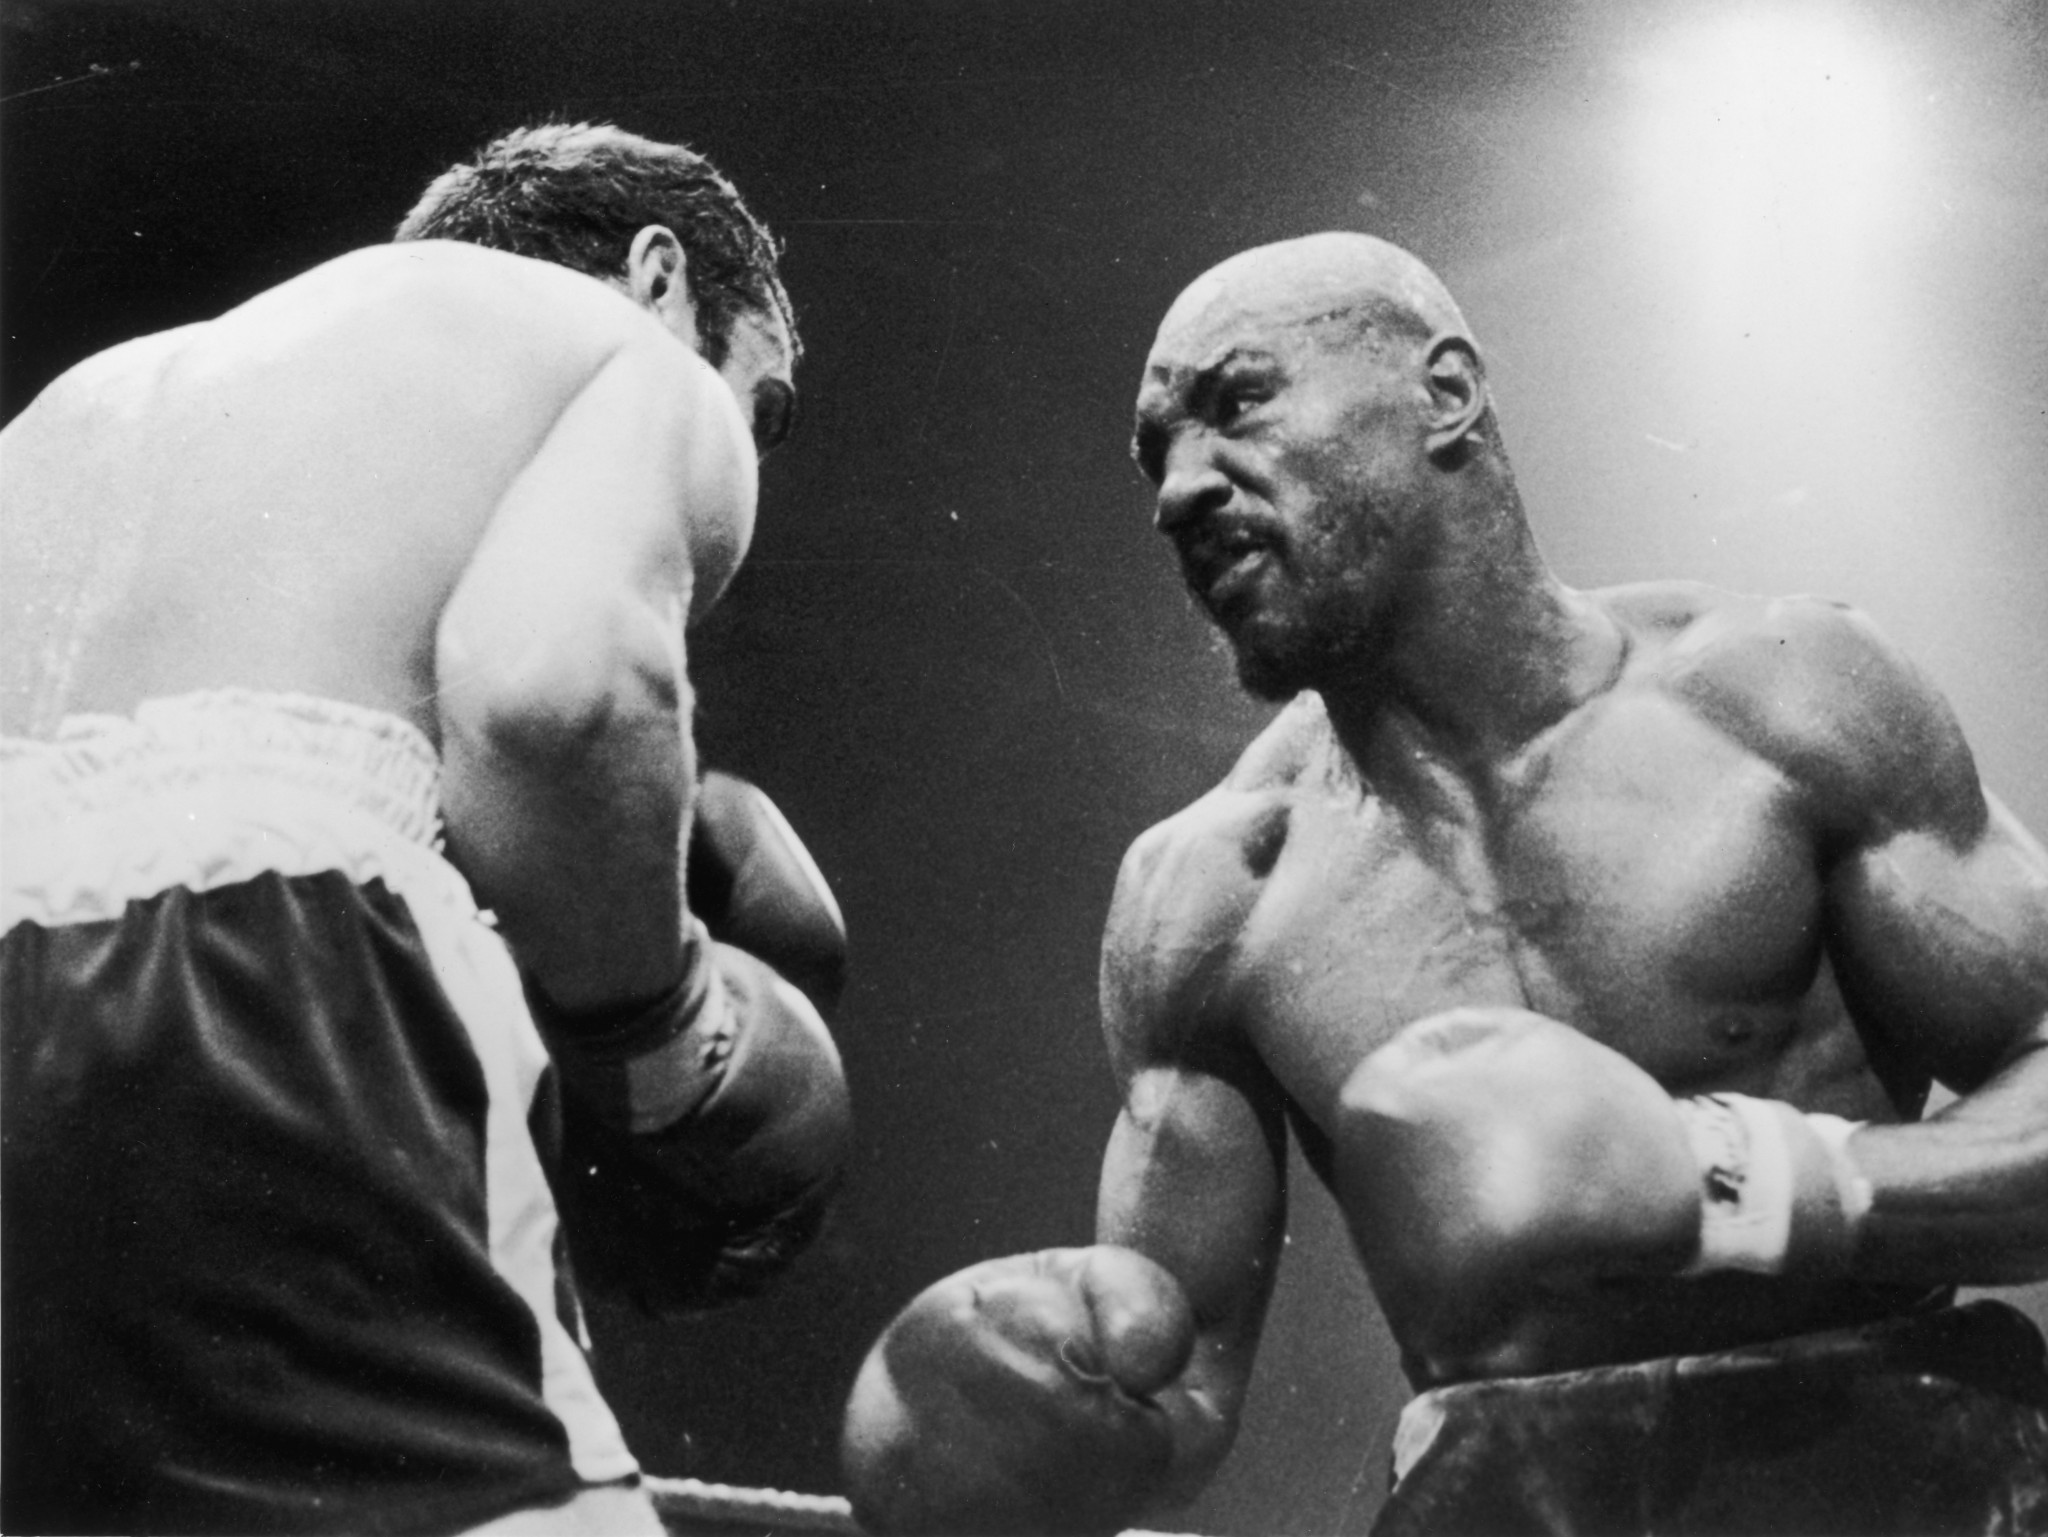 Marvelous Marvin Hagler stopped Alan Minter in three rounds following the latter's infamous remark ©Getty Images